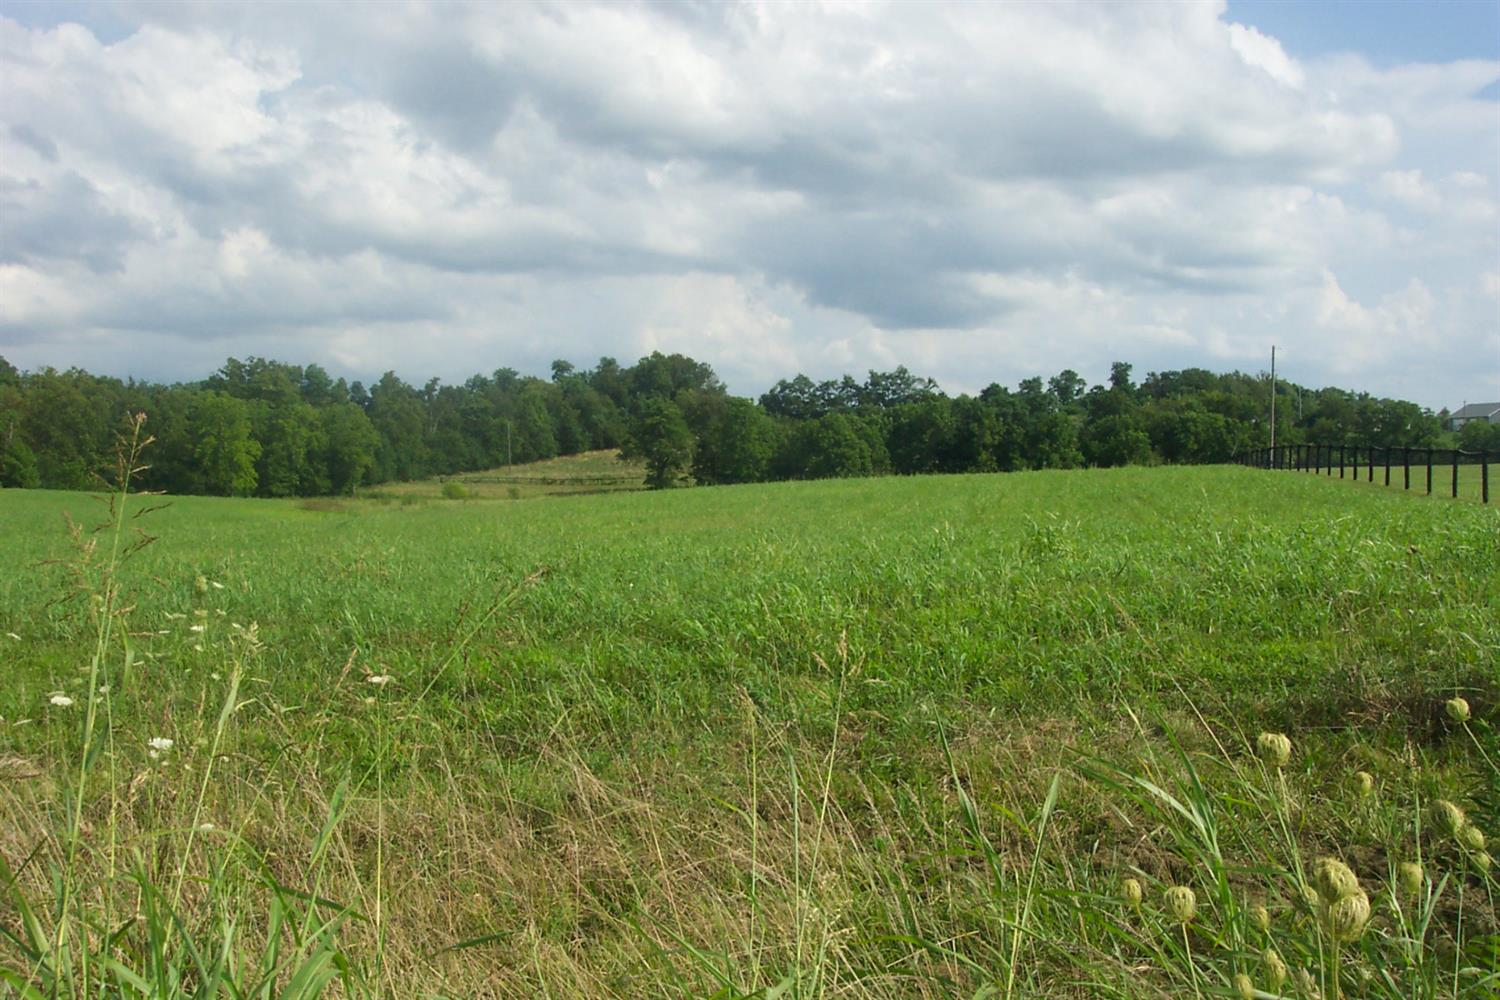 Looking%20for%20a%20country%20farm%20to%20call%20your%20own?%20This%20baby%20farm%20with%2010.81%20acres%20of%20lush%20Bluegrass%20Kentucky%20farm%20land%20is%20nestled%20within%20the%20Fishers%20Mill%20Landing%20subdivision.%20Located%20on%20a%20tranquil%20cul-de-sac,%20this%20is%20a%20great%20horse%20friendly%20property.%20%20Mature%20trees%20and%20a%20stream%20are%20located%20at%20the%20back%20of%20the%20property%20and%20there%20is%20also%20a%20spring.%20KU%20electric.%20%20Restrictions%20apply%20with%20horses%20permitted%20and%20one%20acre%20set%20aside%20for%20the%20home%20site.%20%20Property%20is%20located%20in%20Scott%20Co.%20and%20owners%20pay%20Scott%20Co.%20taxes:%20however,%20it%20does%20have%20a%20Midway%20address.%20Plat%20and%20restrictions%20are%20available%20on%20request.